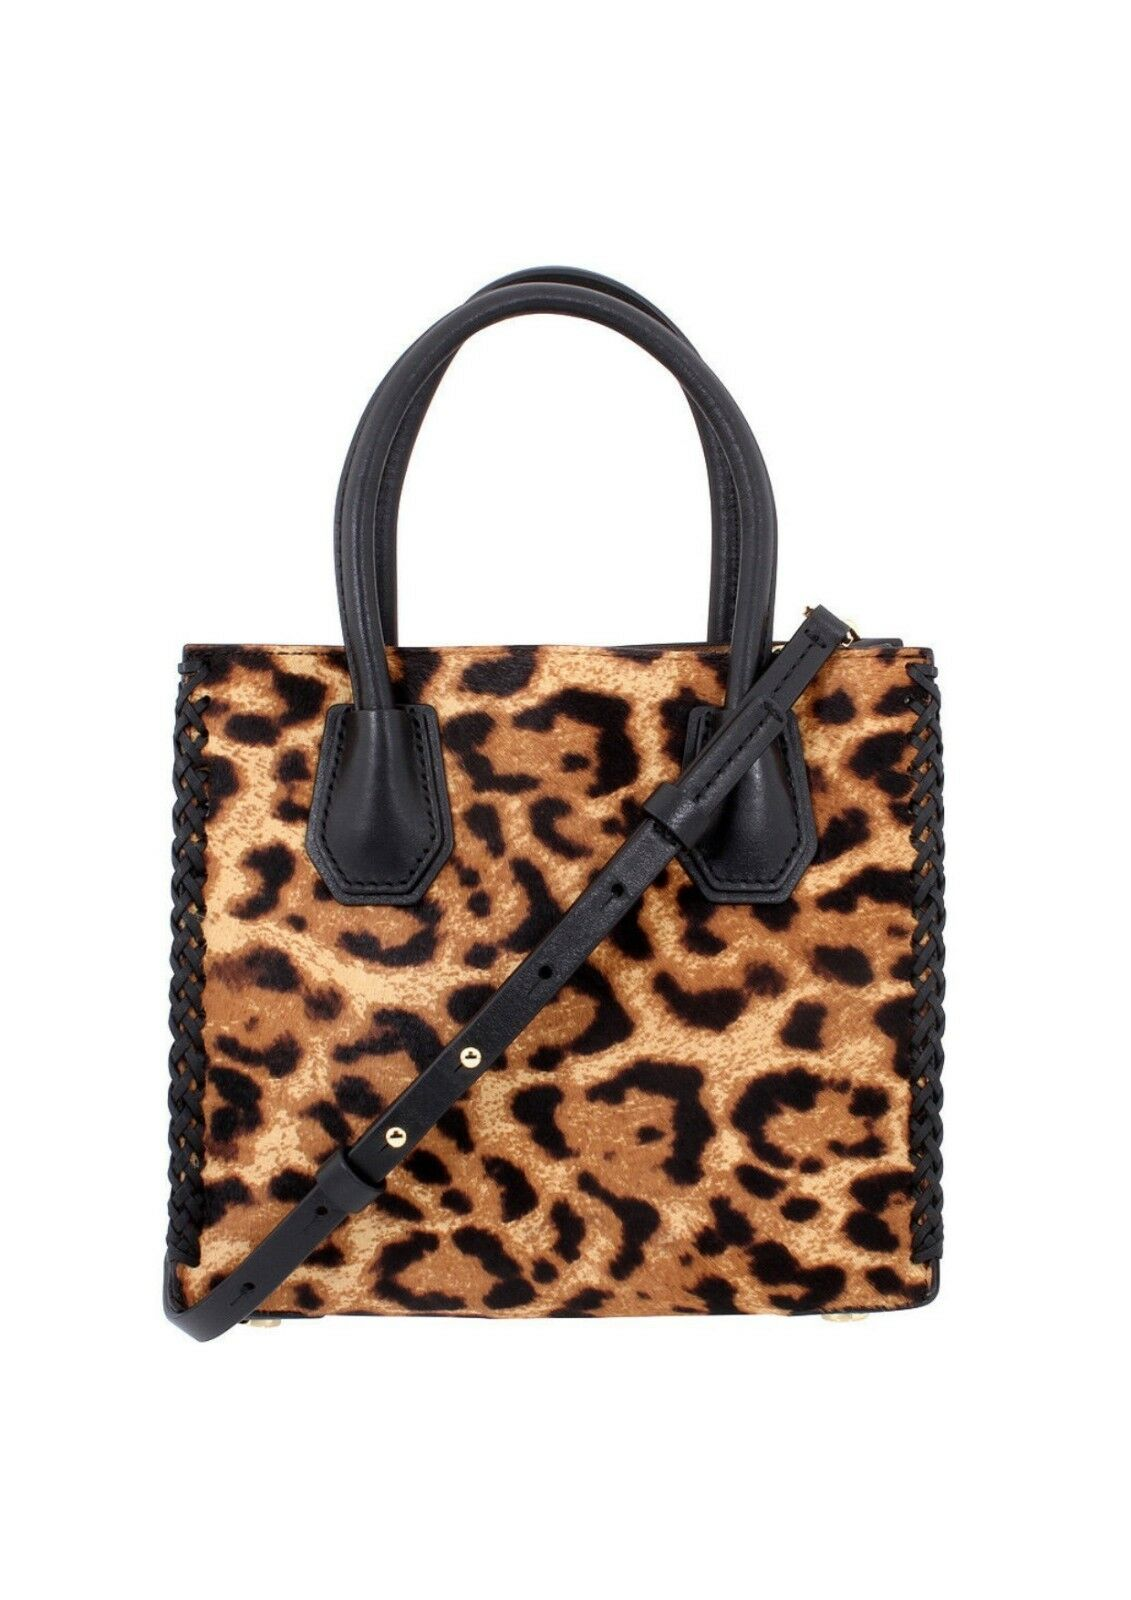 00e13b6a2396 Michael Kors Mercer Leopard Calf Hair Crossbody Butterscotch With Dustbag  for sale online